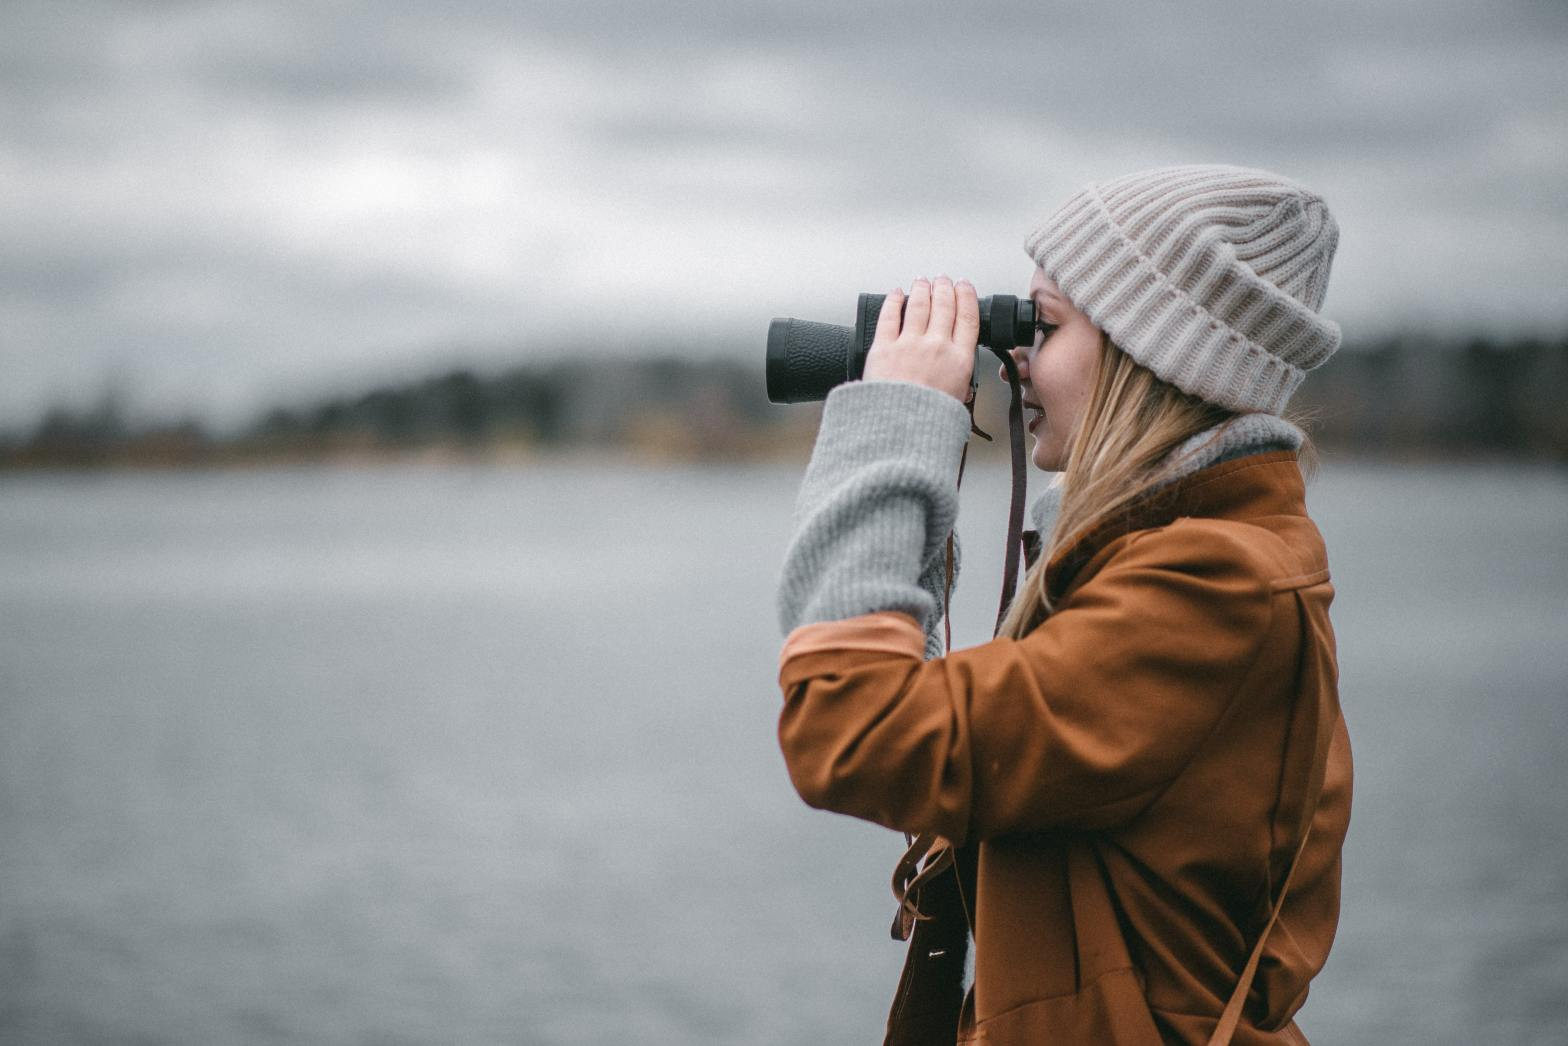 Woman looking through binoculars while standing beside water on a cloudy day